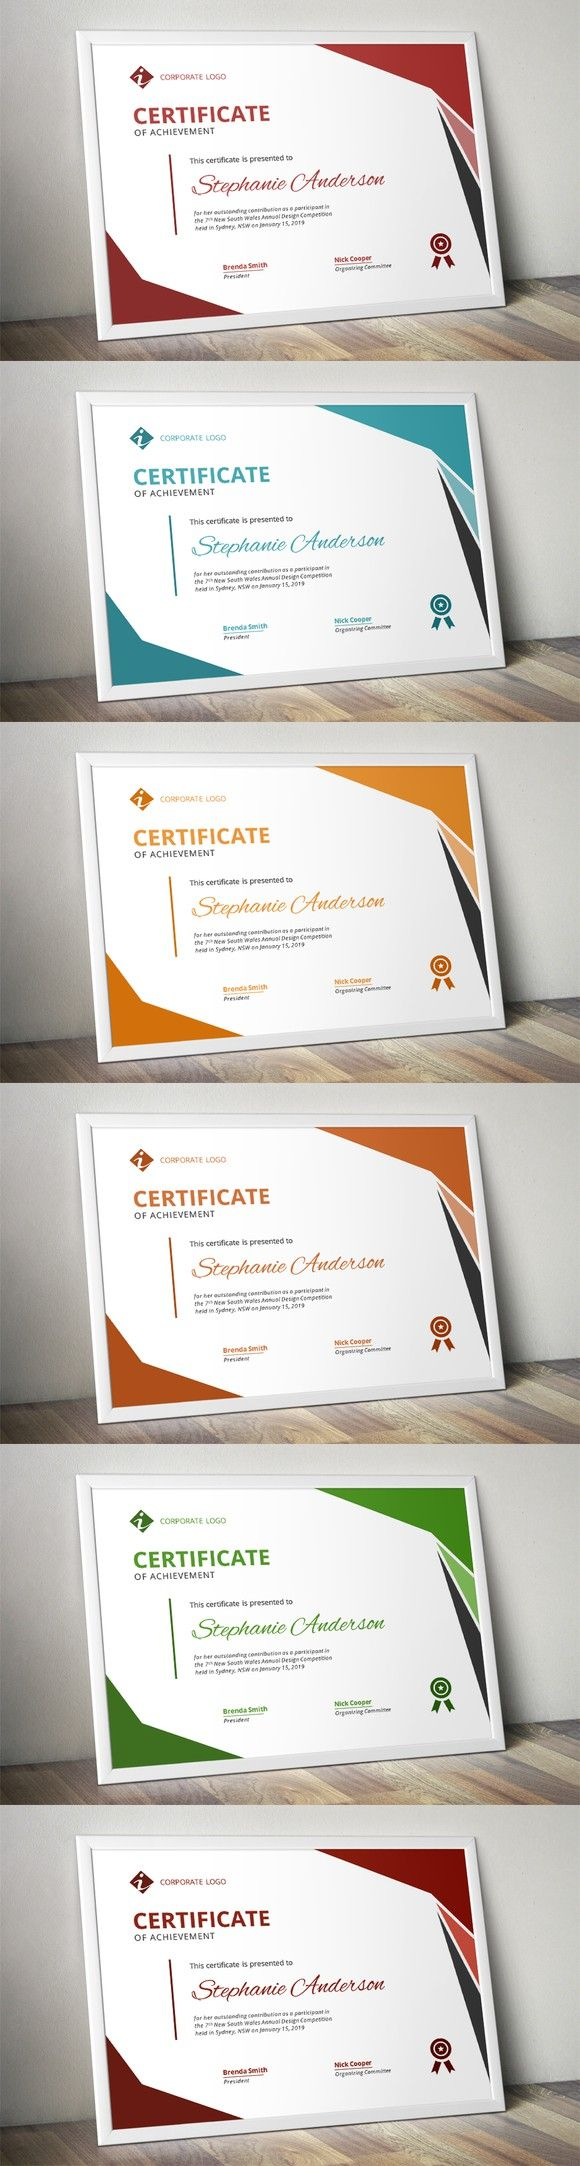 Background Templates For Microsoft Word Amusing 7 Best Certificate Design Images On Pinterest